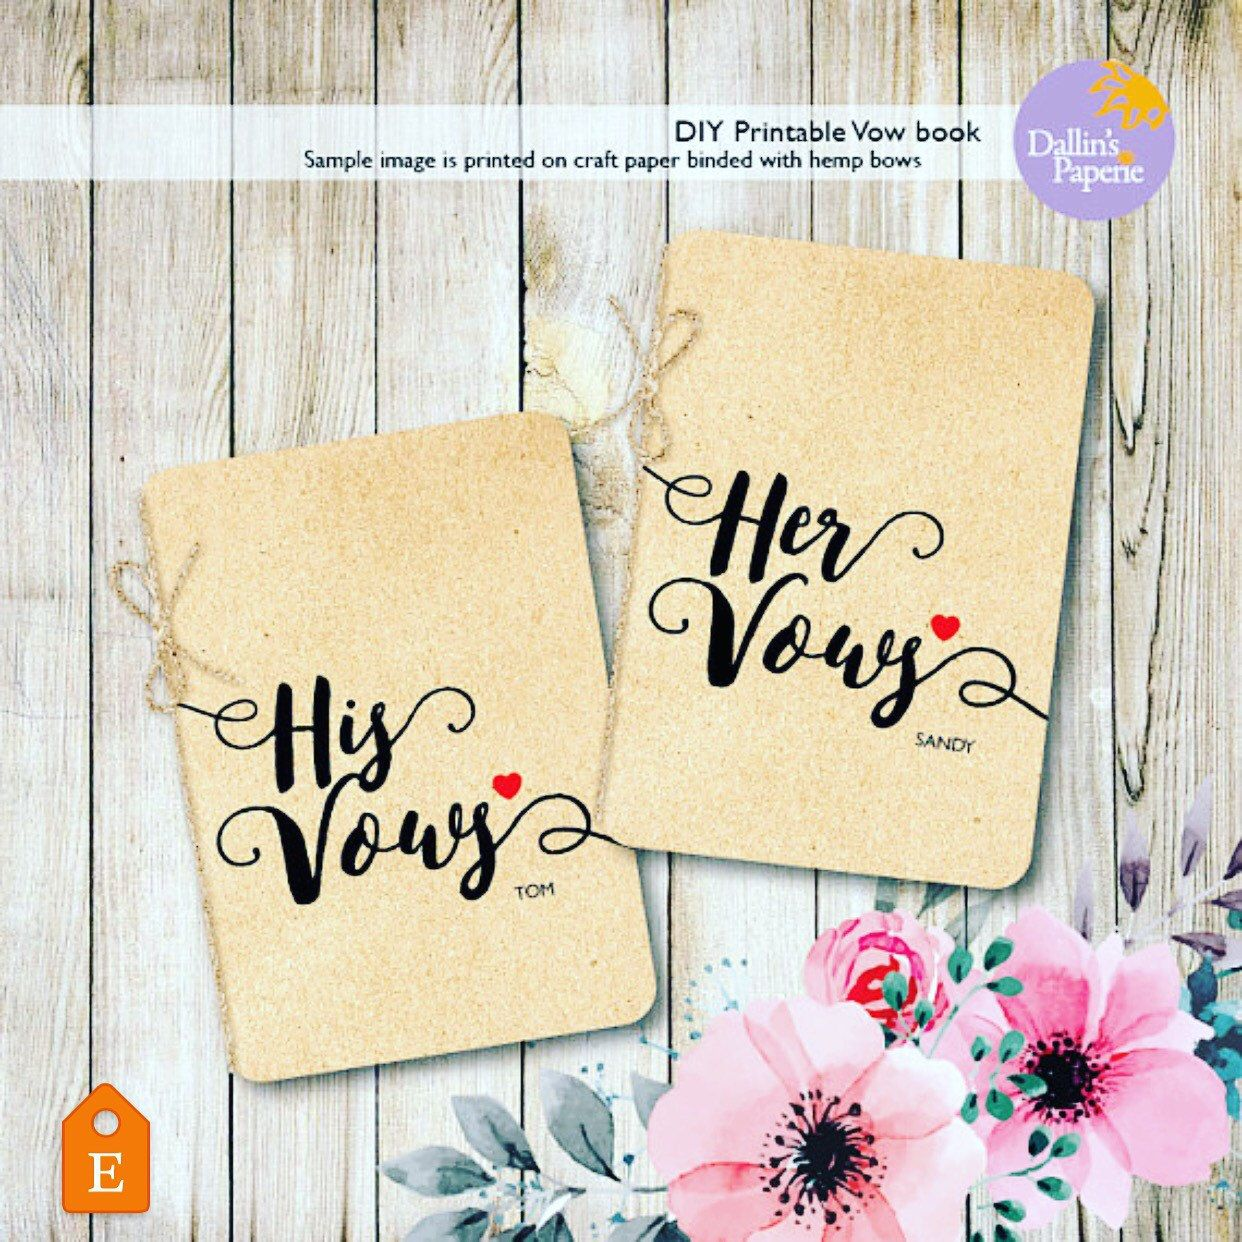 Wedding Vow Books, Printable vow books, DIY wedding vow ...